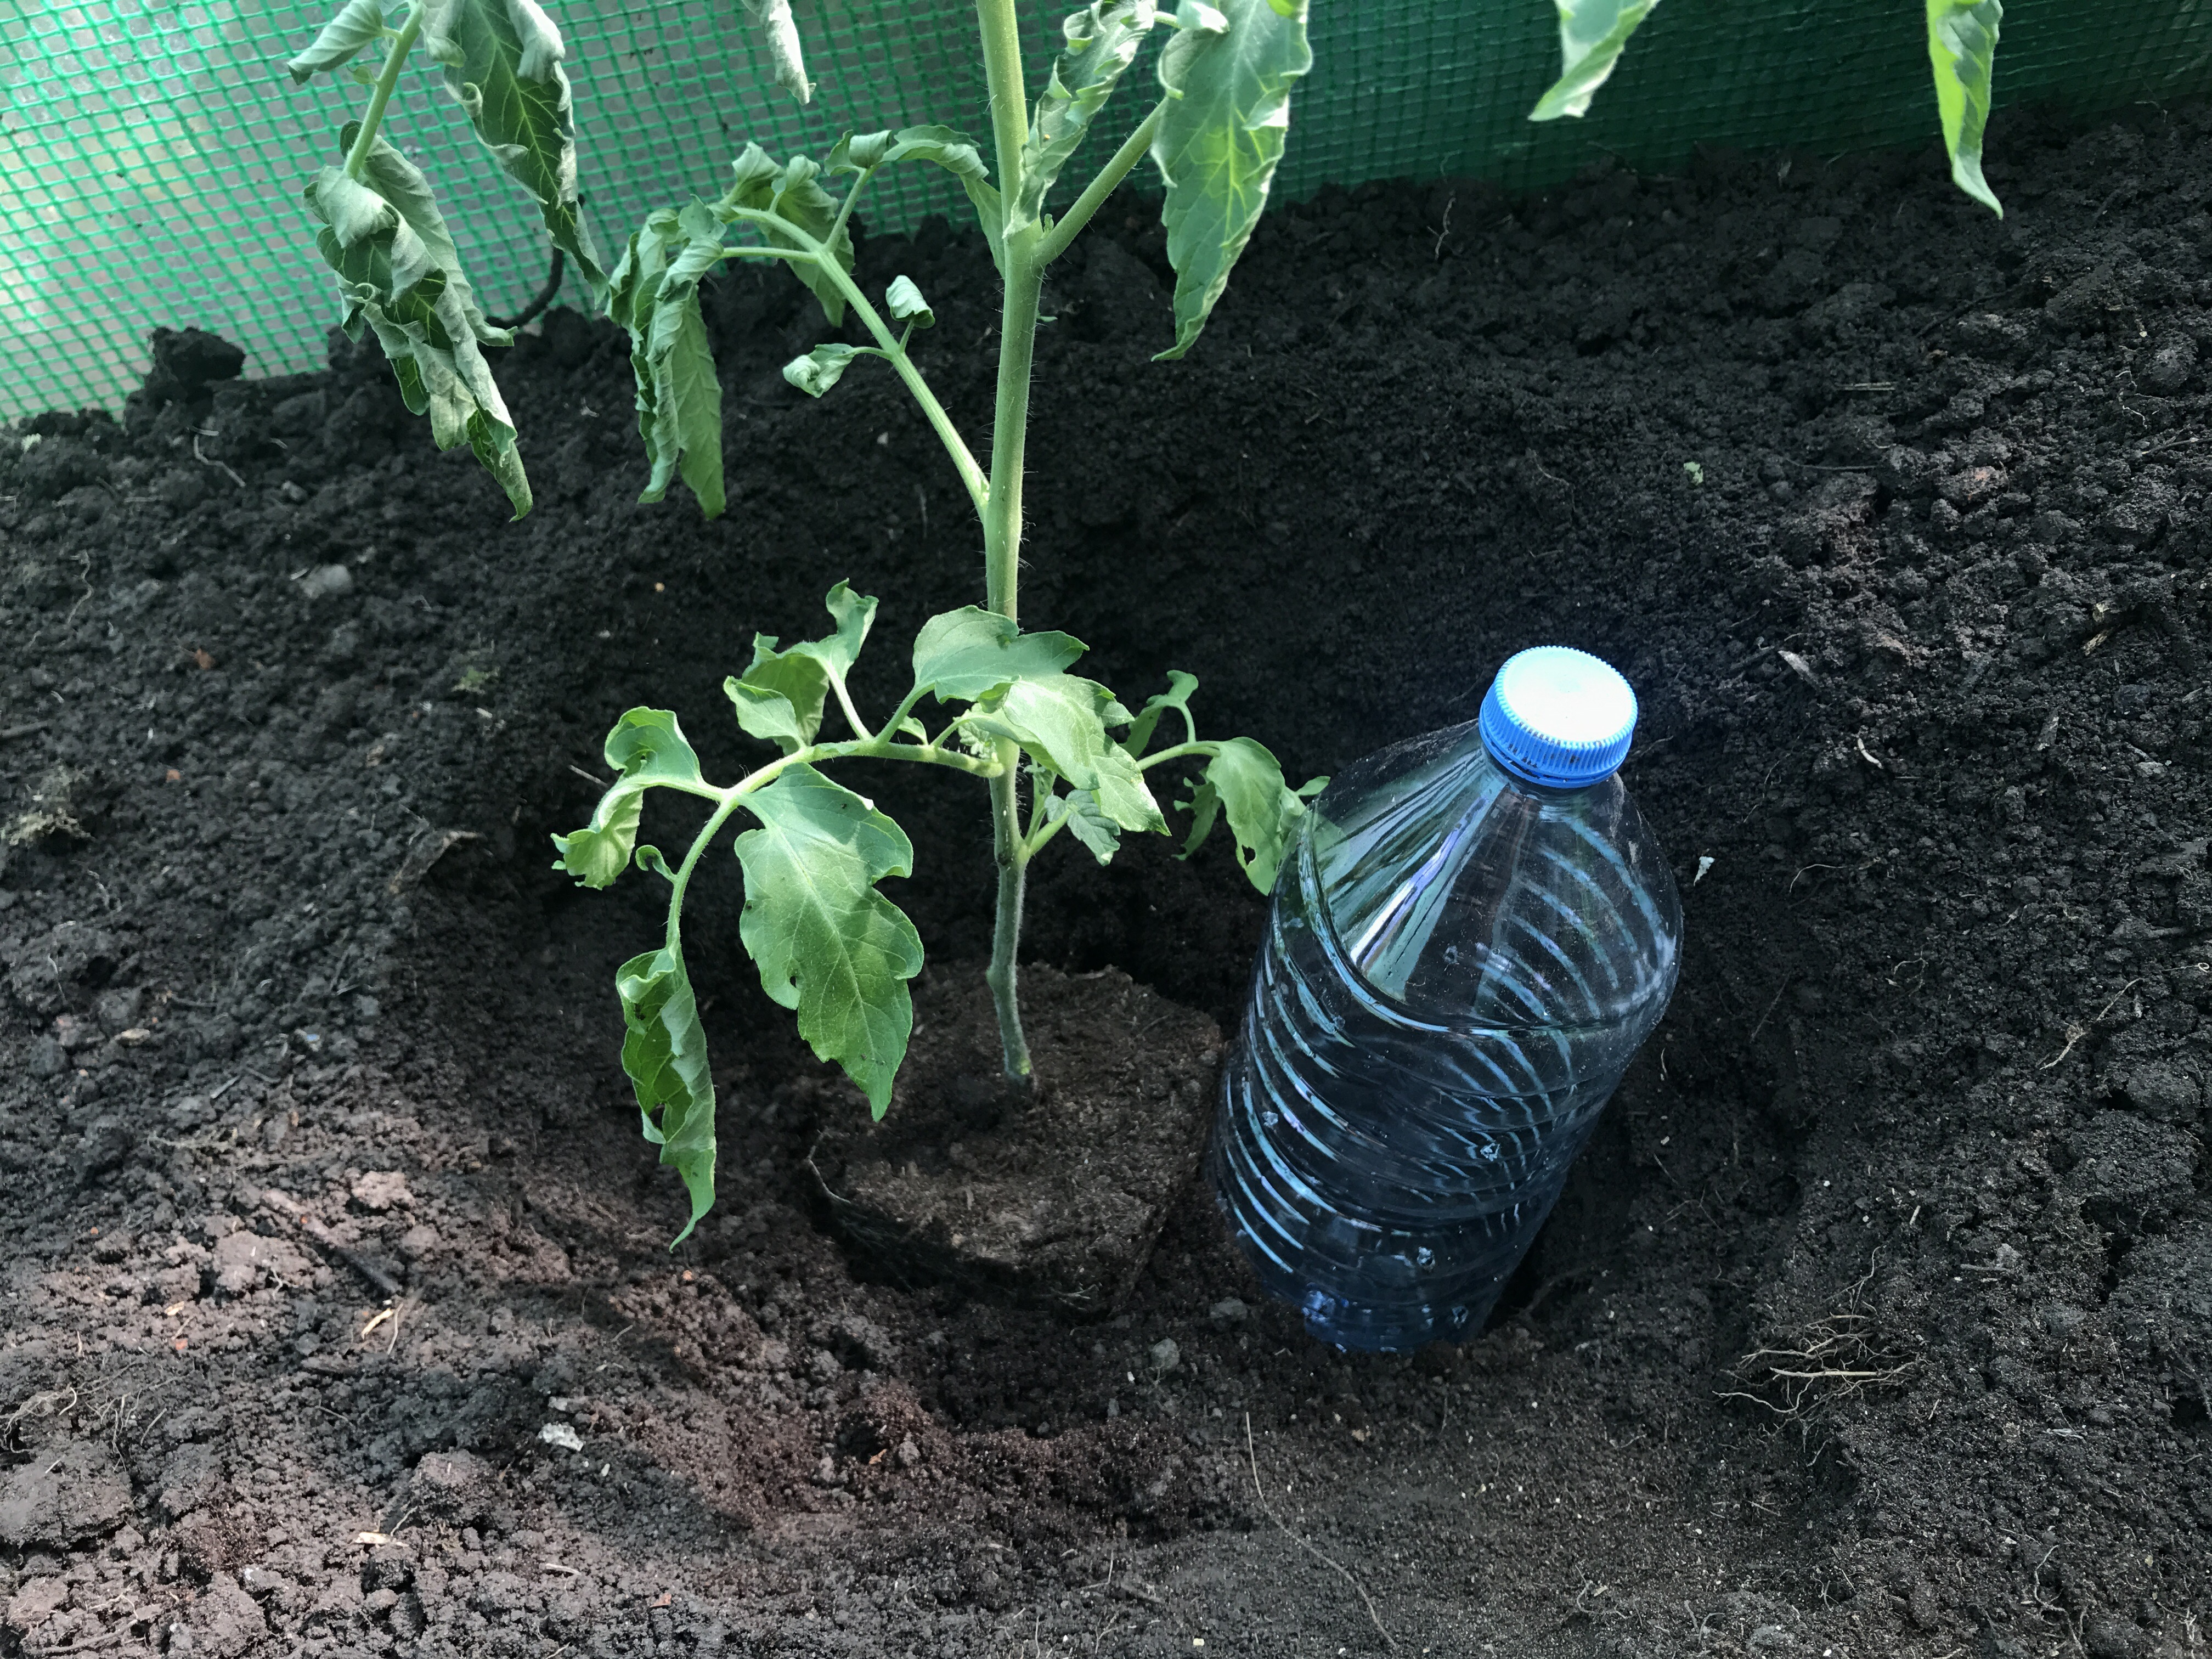 i had to remove a few leaves from the tomato plant but thats ok the deeper you plant it the more roots will grow of the stem giving you a stronger plant